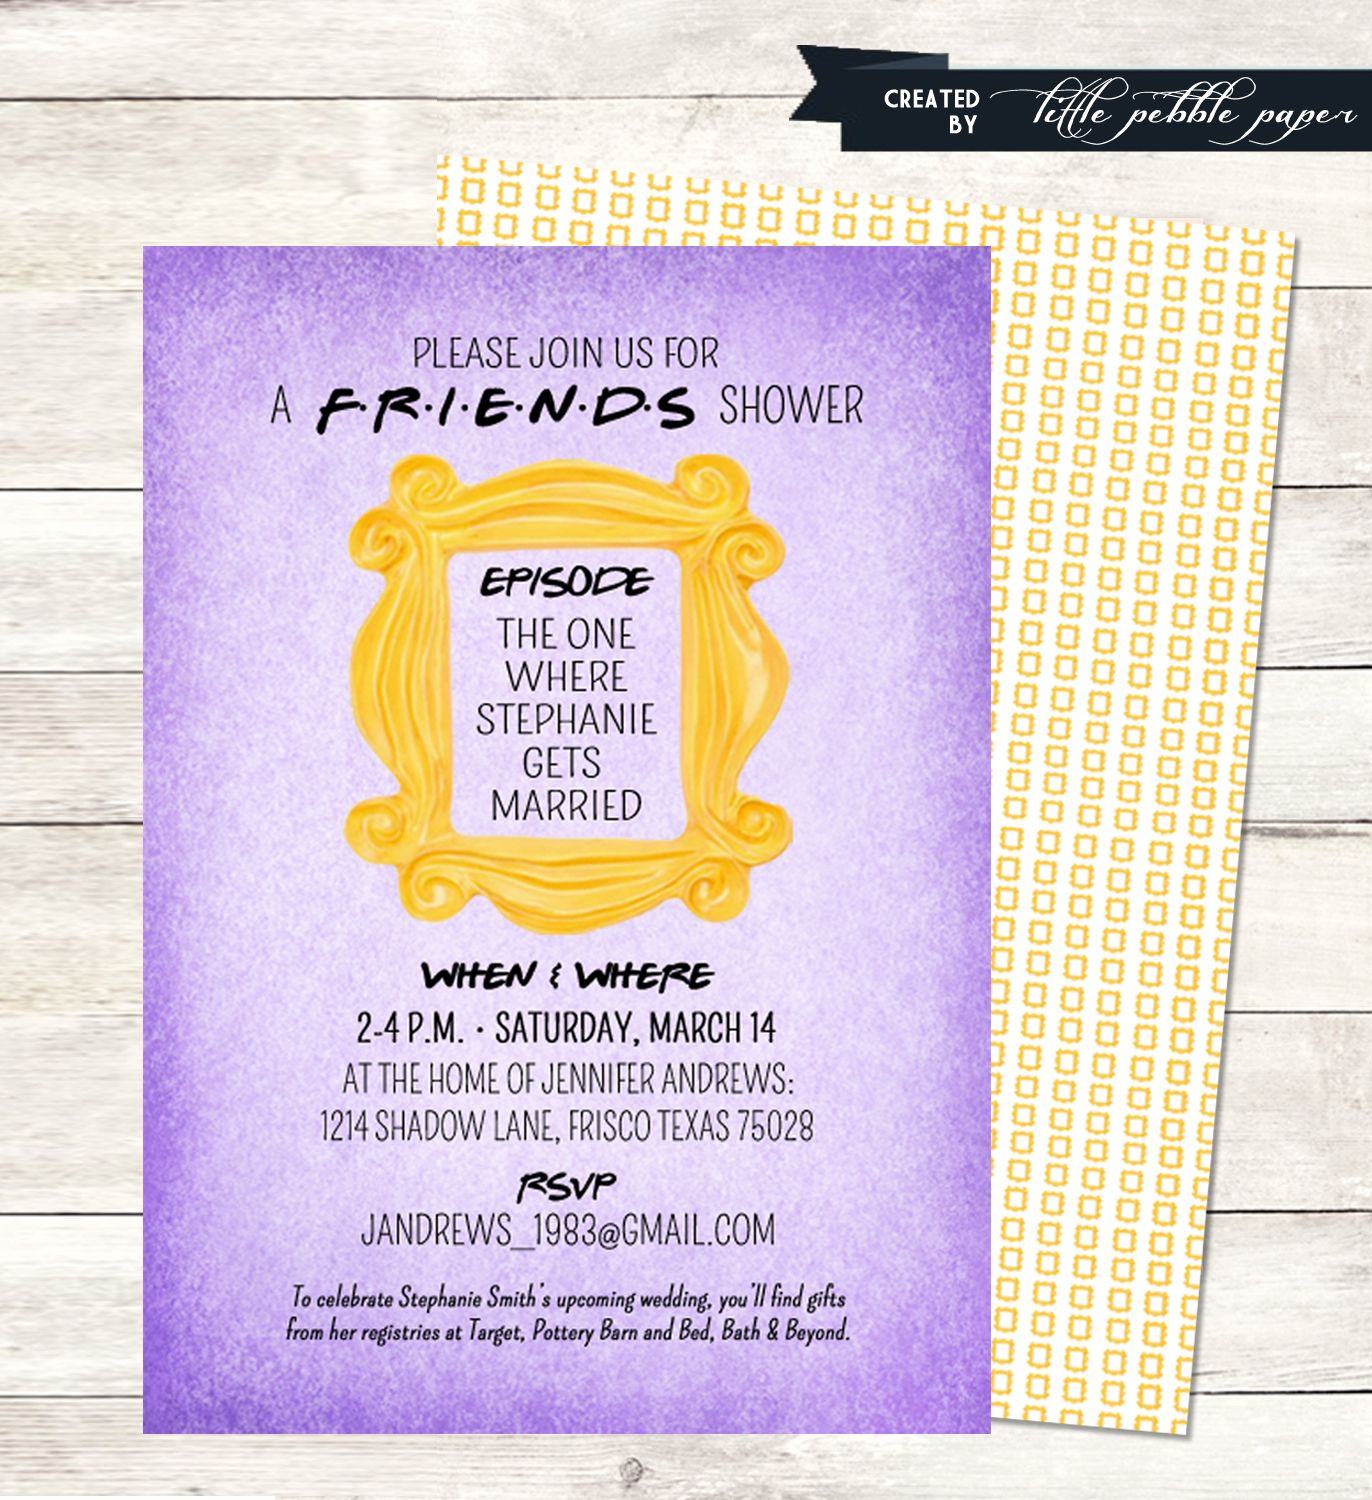 Friends themed shower or birthday party invitation for Themed bridal shower invitations